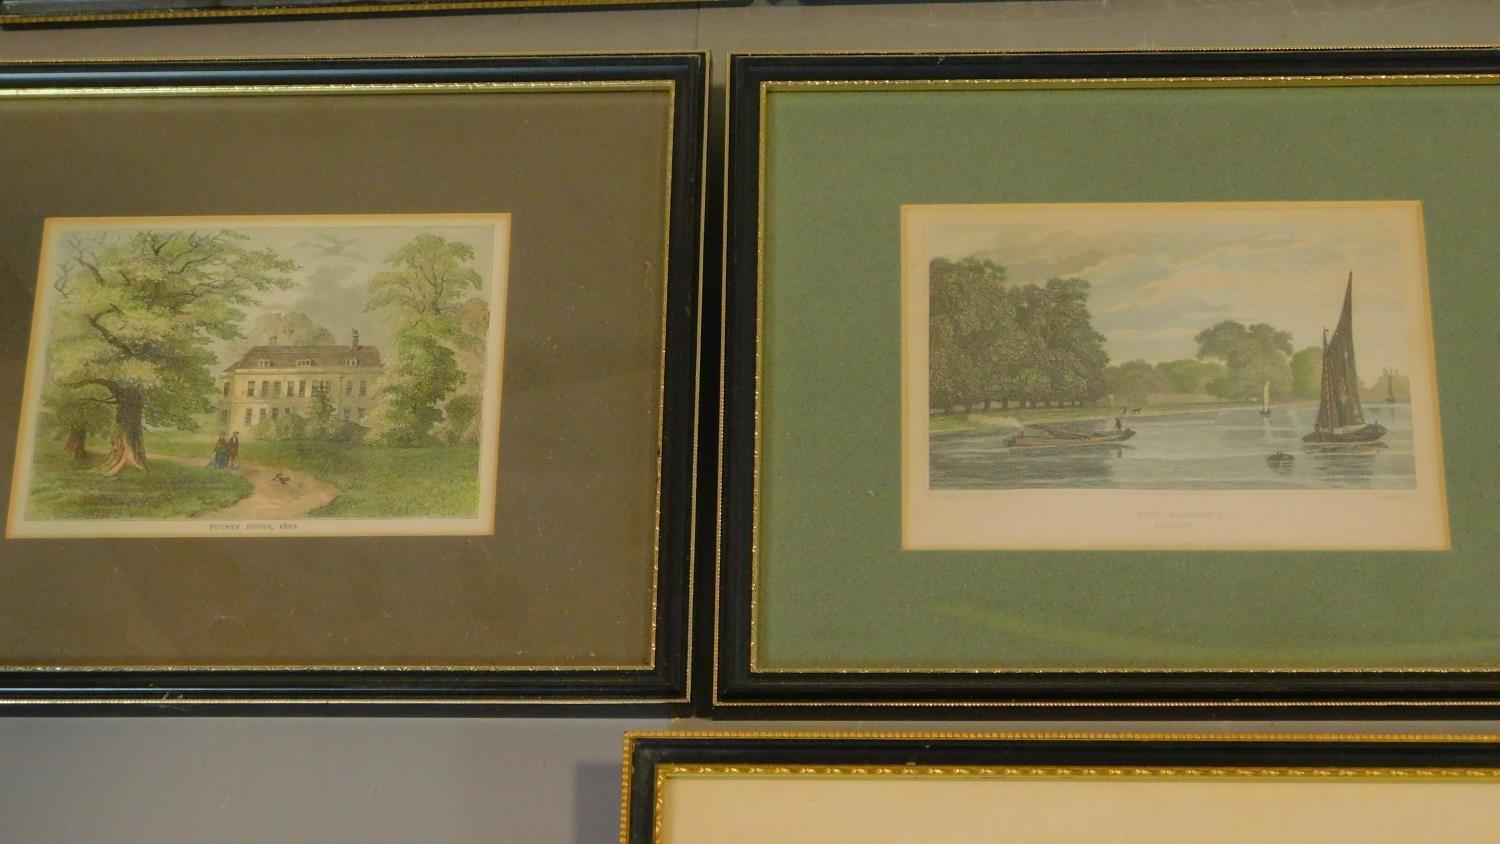 A miscellaneous collection of eleven framed and glazed prints of avian and architectural interest. - Image 5 of 7